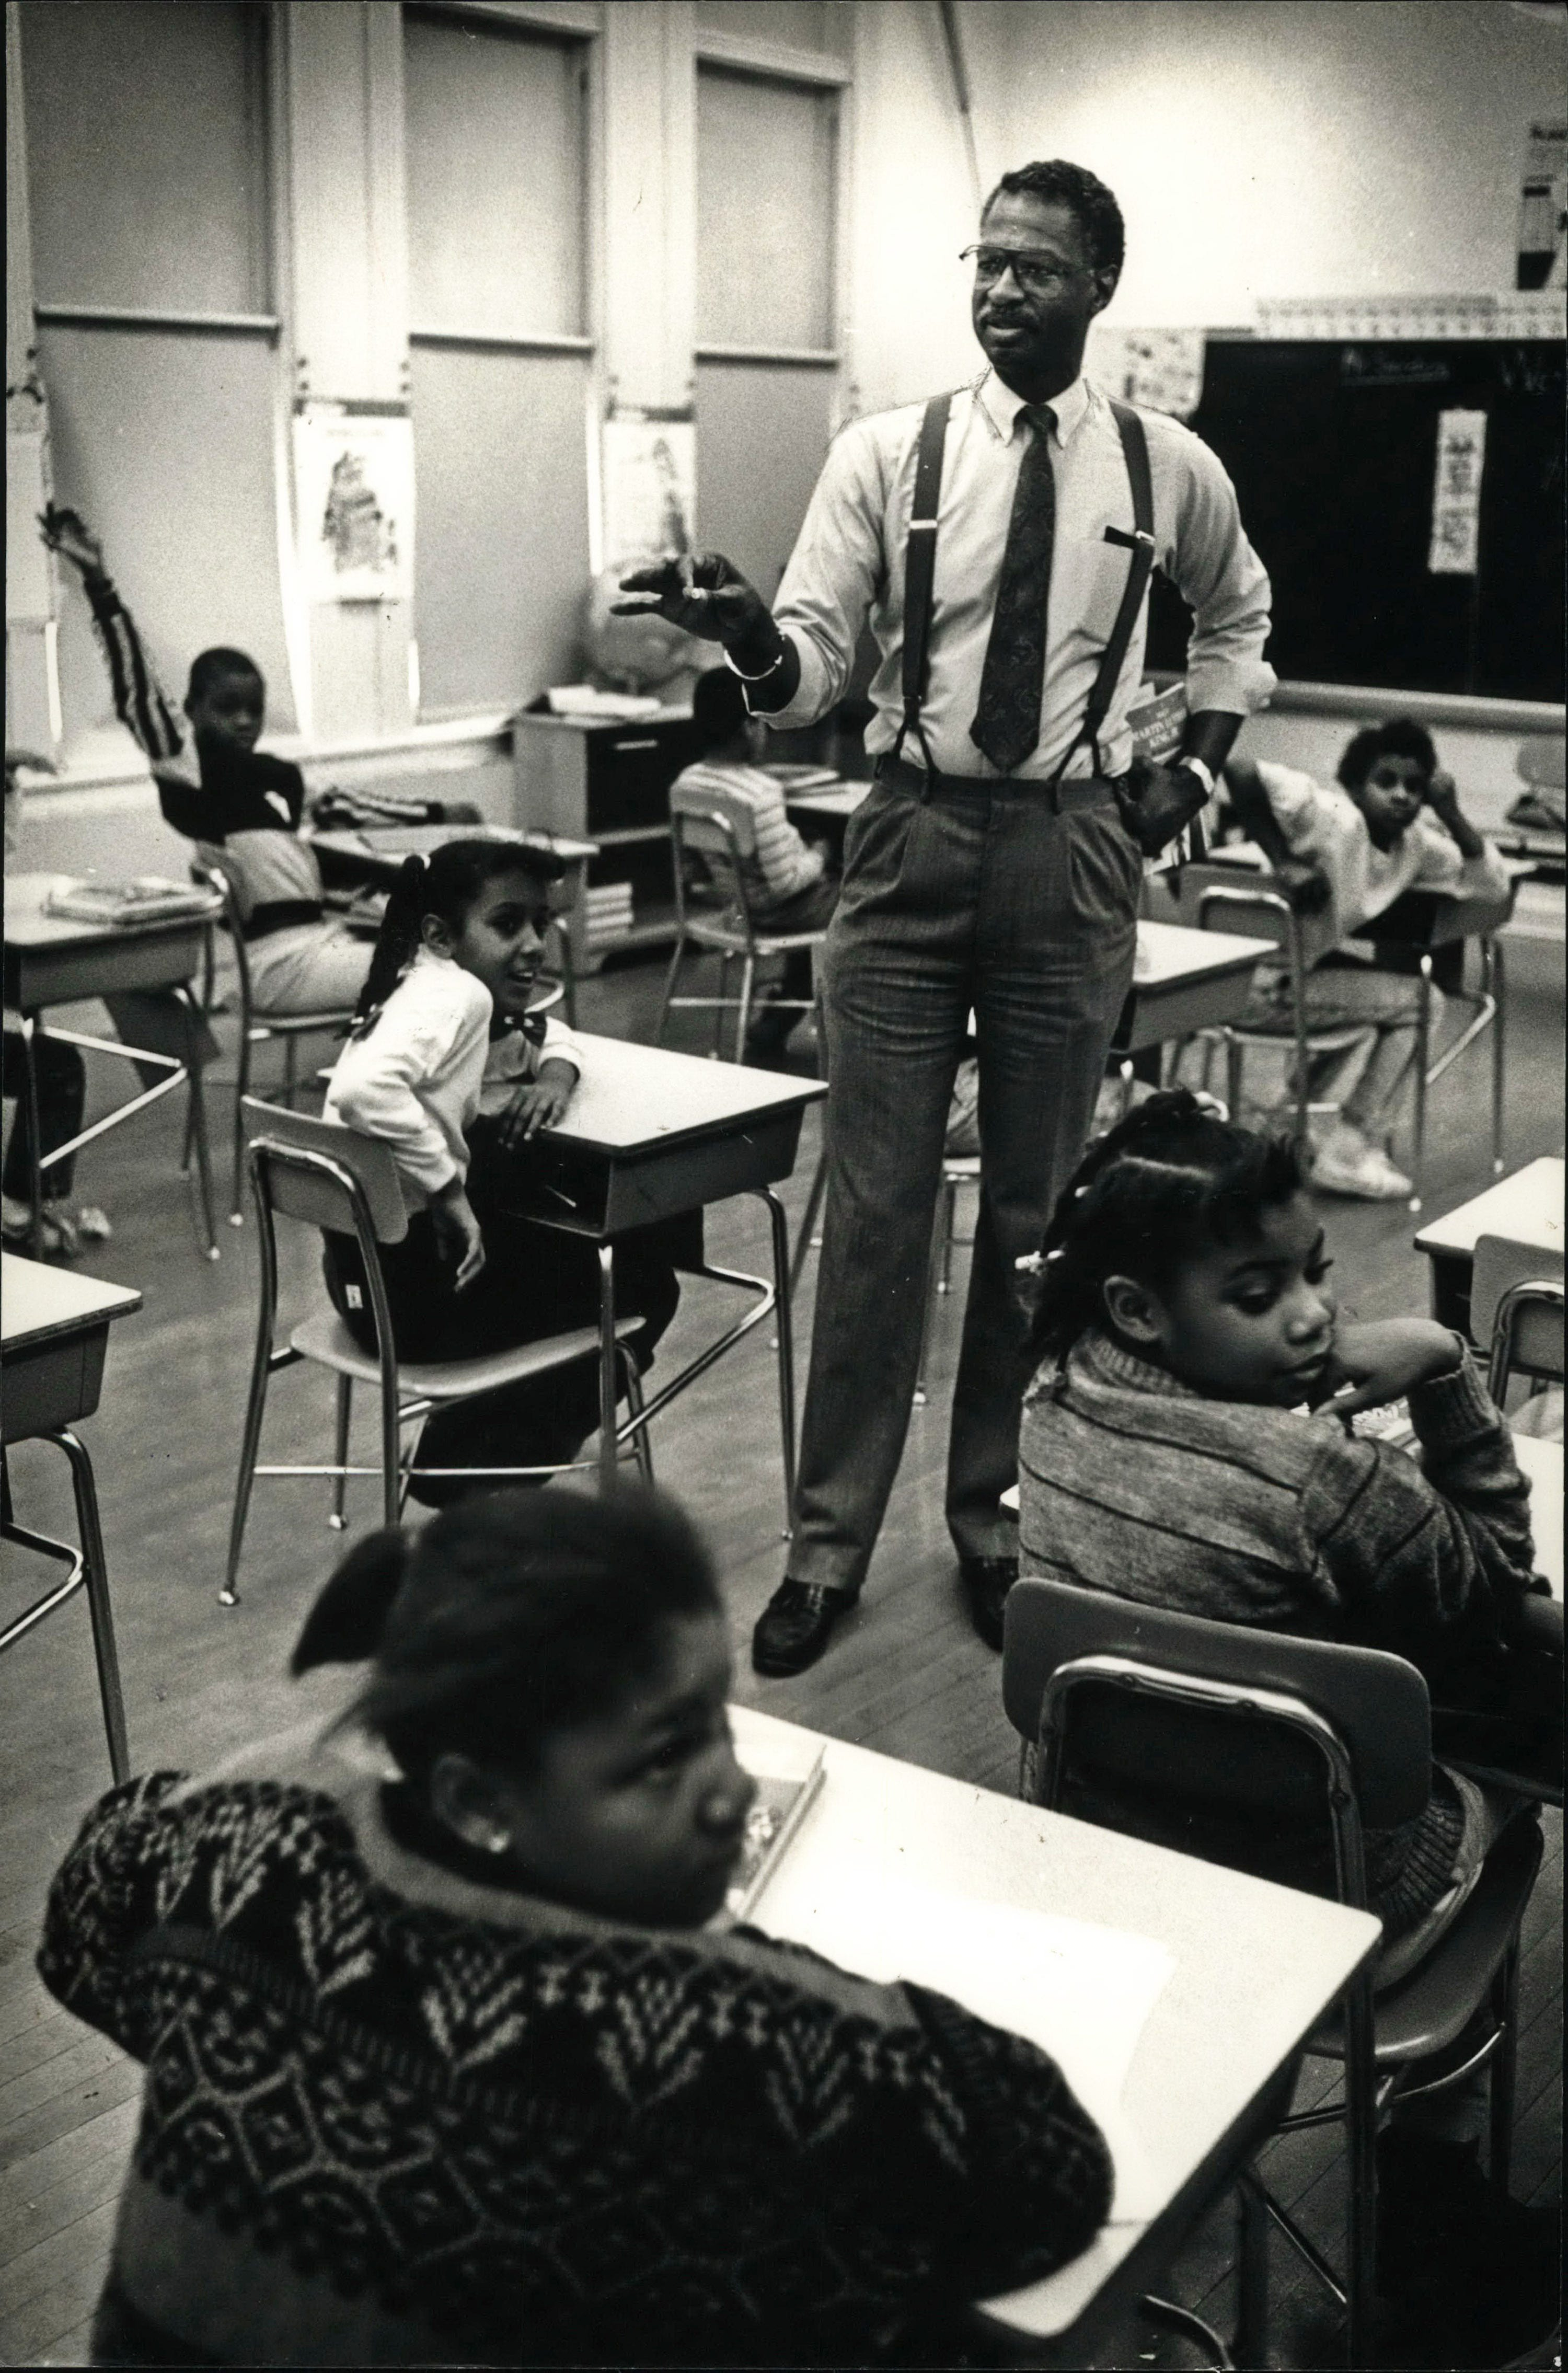 A pupil at Victor Berger School, 3275 N. 3rd St., raises his hand for a chance to answer a question asked by Howard L. Fuller, Milwaukee County director of health and human services, in this Journal Sentinel 1990 file photo.  Fuller visited the school as a participant in the Martin Luther King Jr. read-in event.